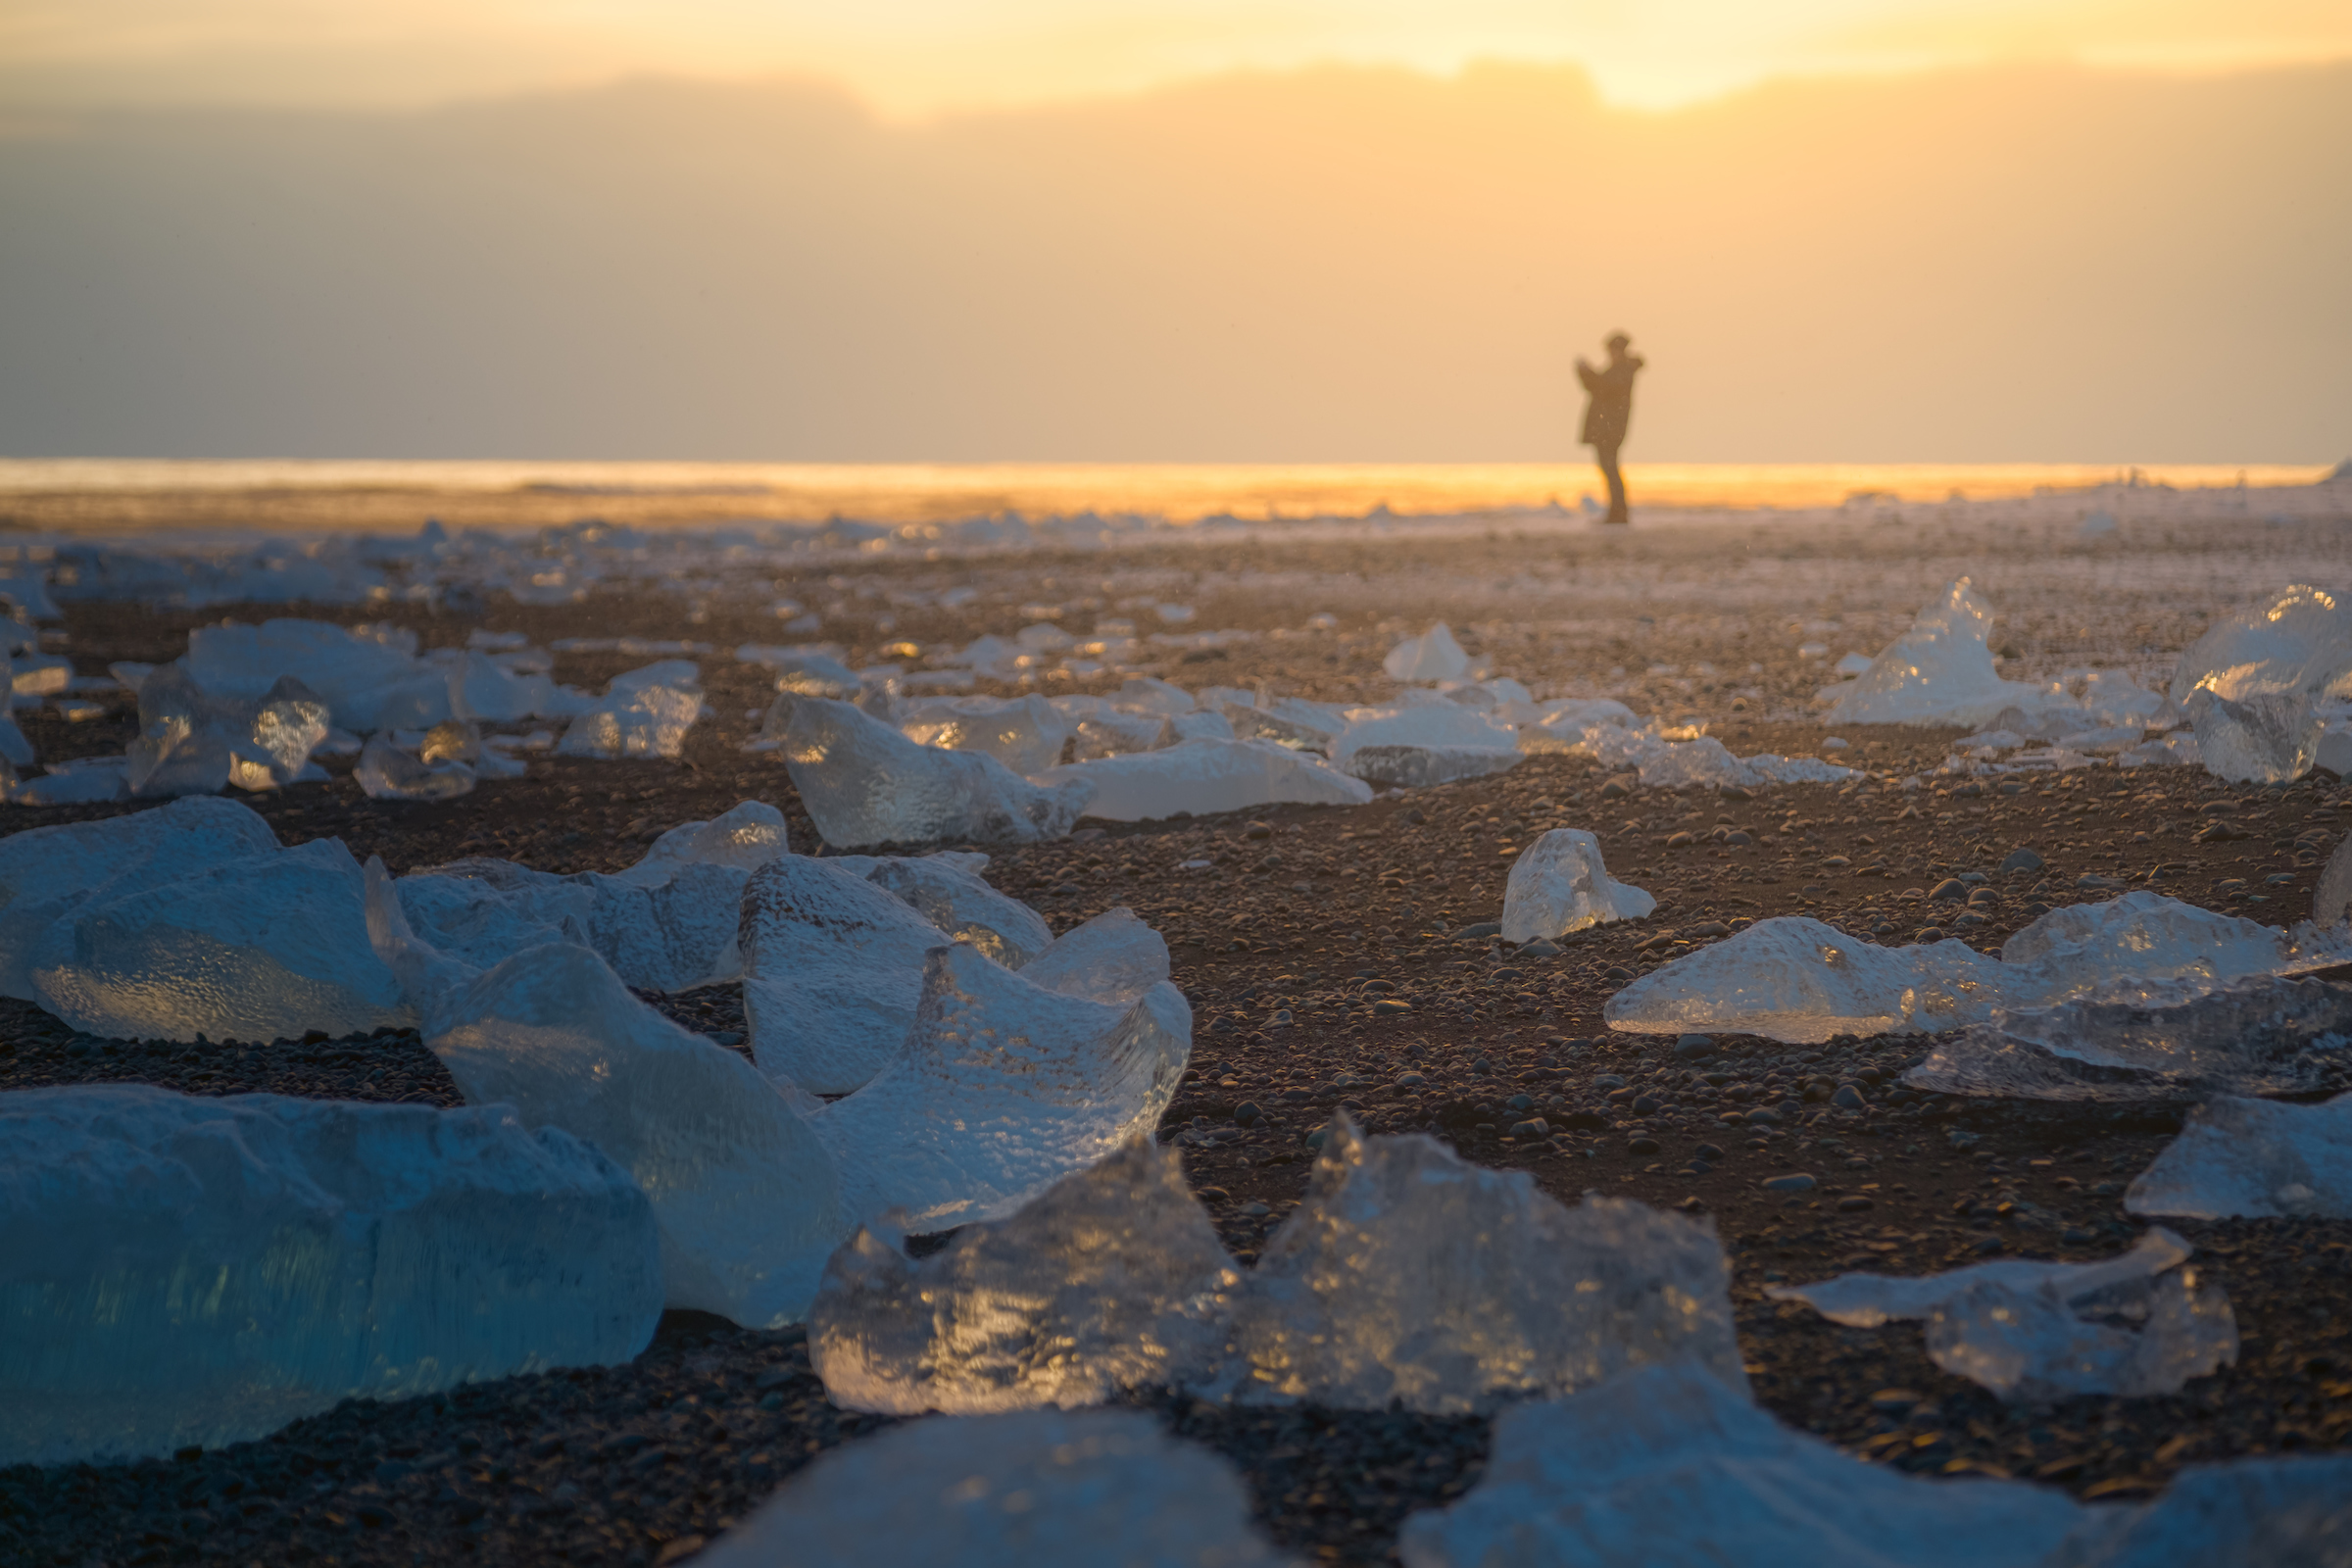 ICELAND_Jökulsárlón_ice_diamond_beach_by_maria_sahai.jpg